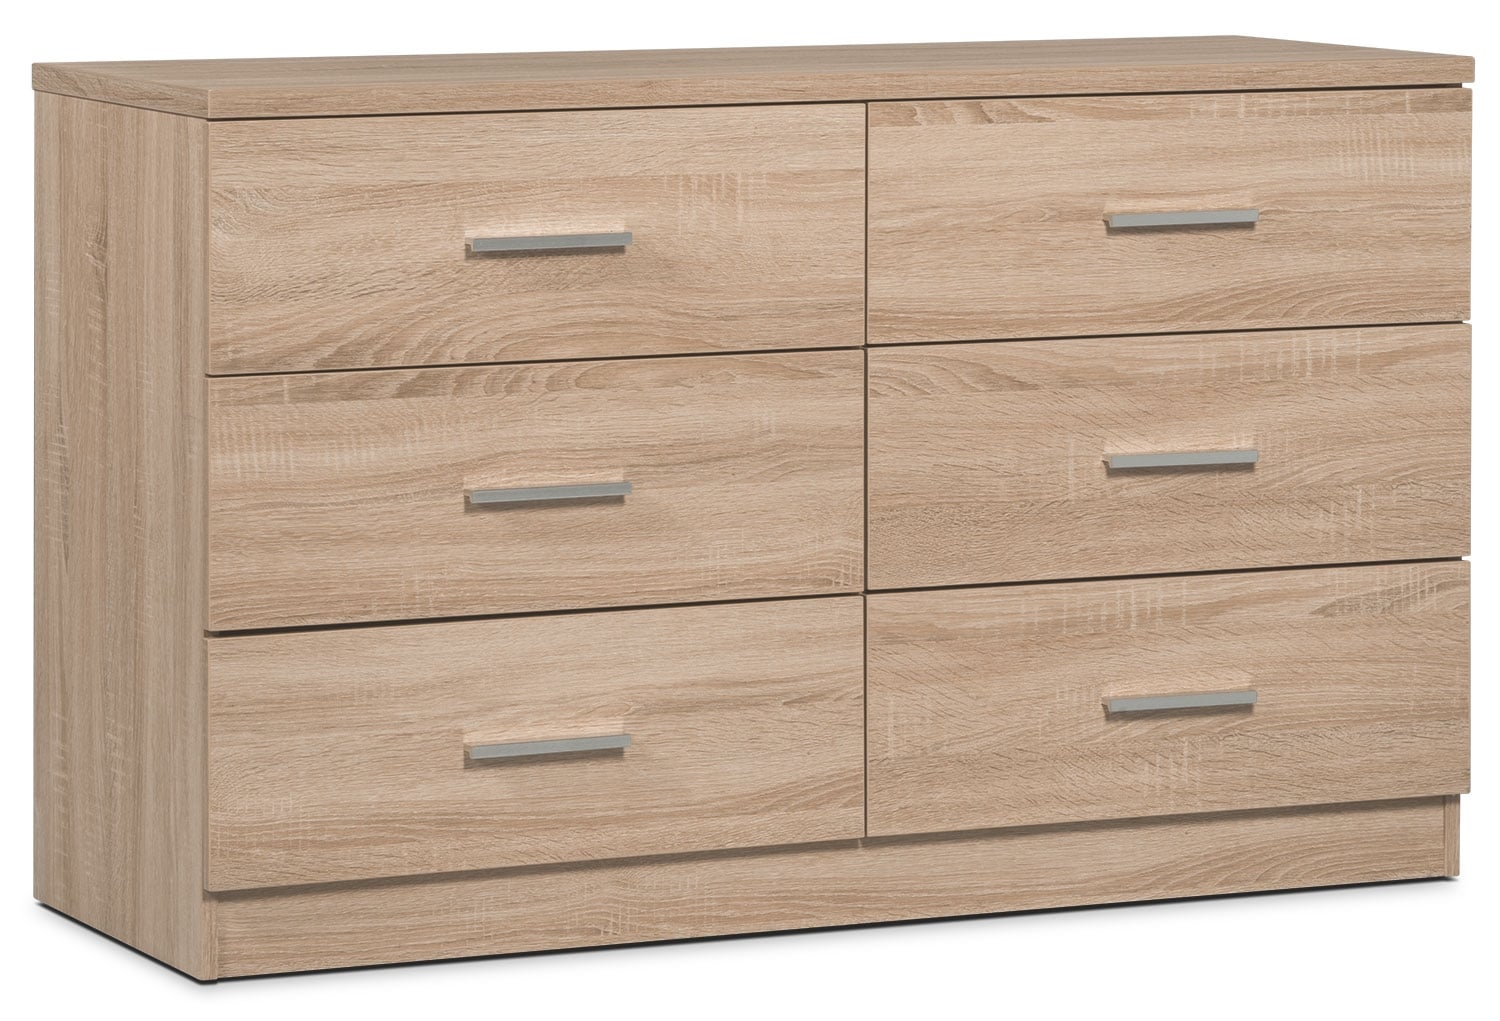 Bedroom Furniture - Sierra Dresser